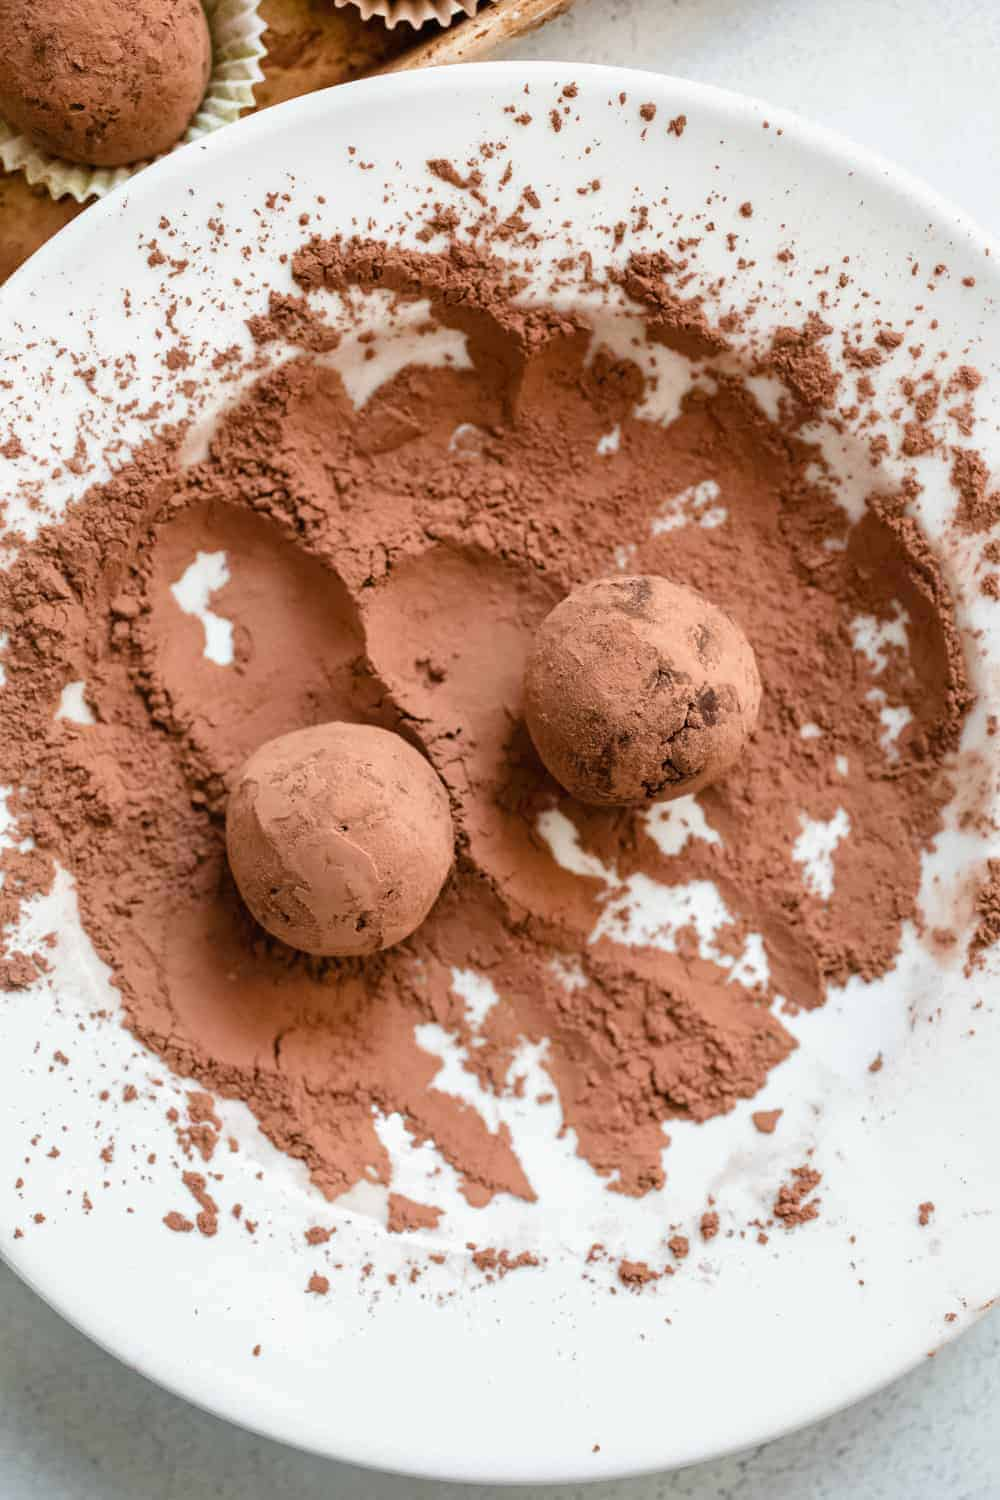 Two rum balls being rolled in a shallow bowl of cocoa powder